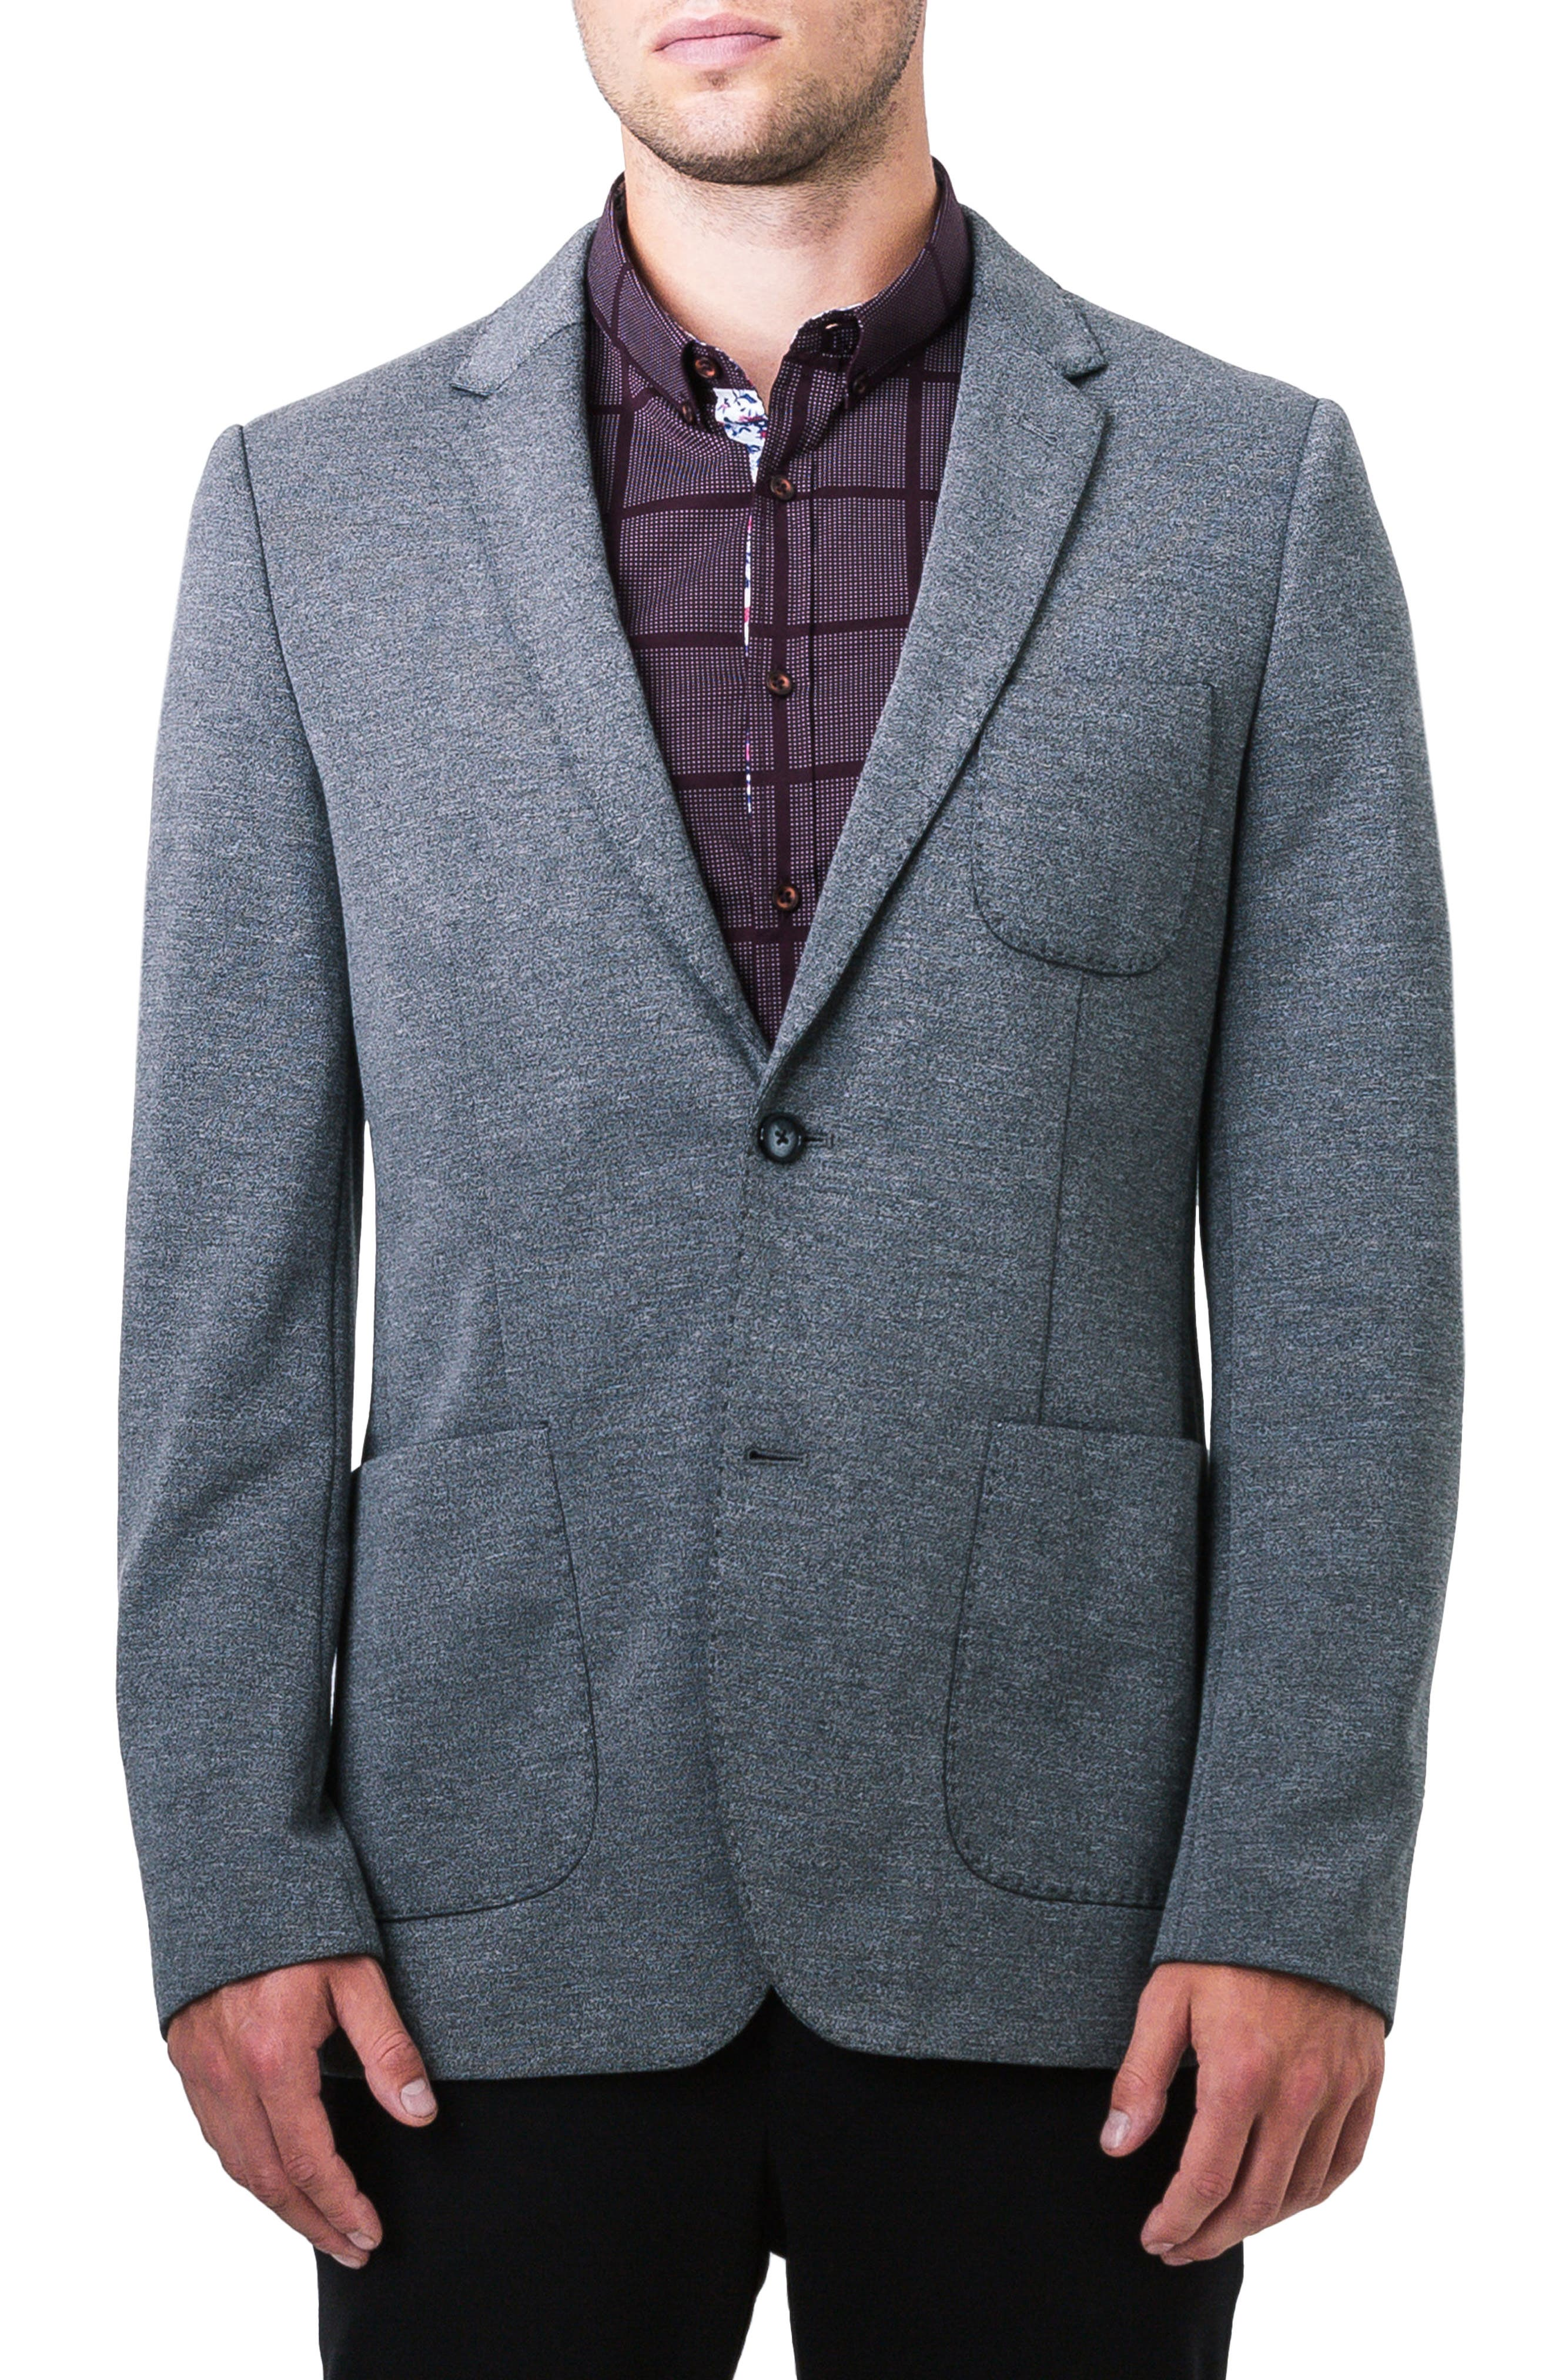 Ovierto Casual Blazer,                         Main,                         color, 050